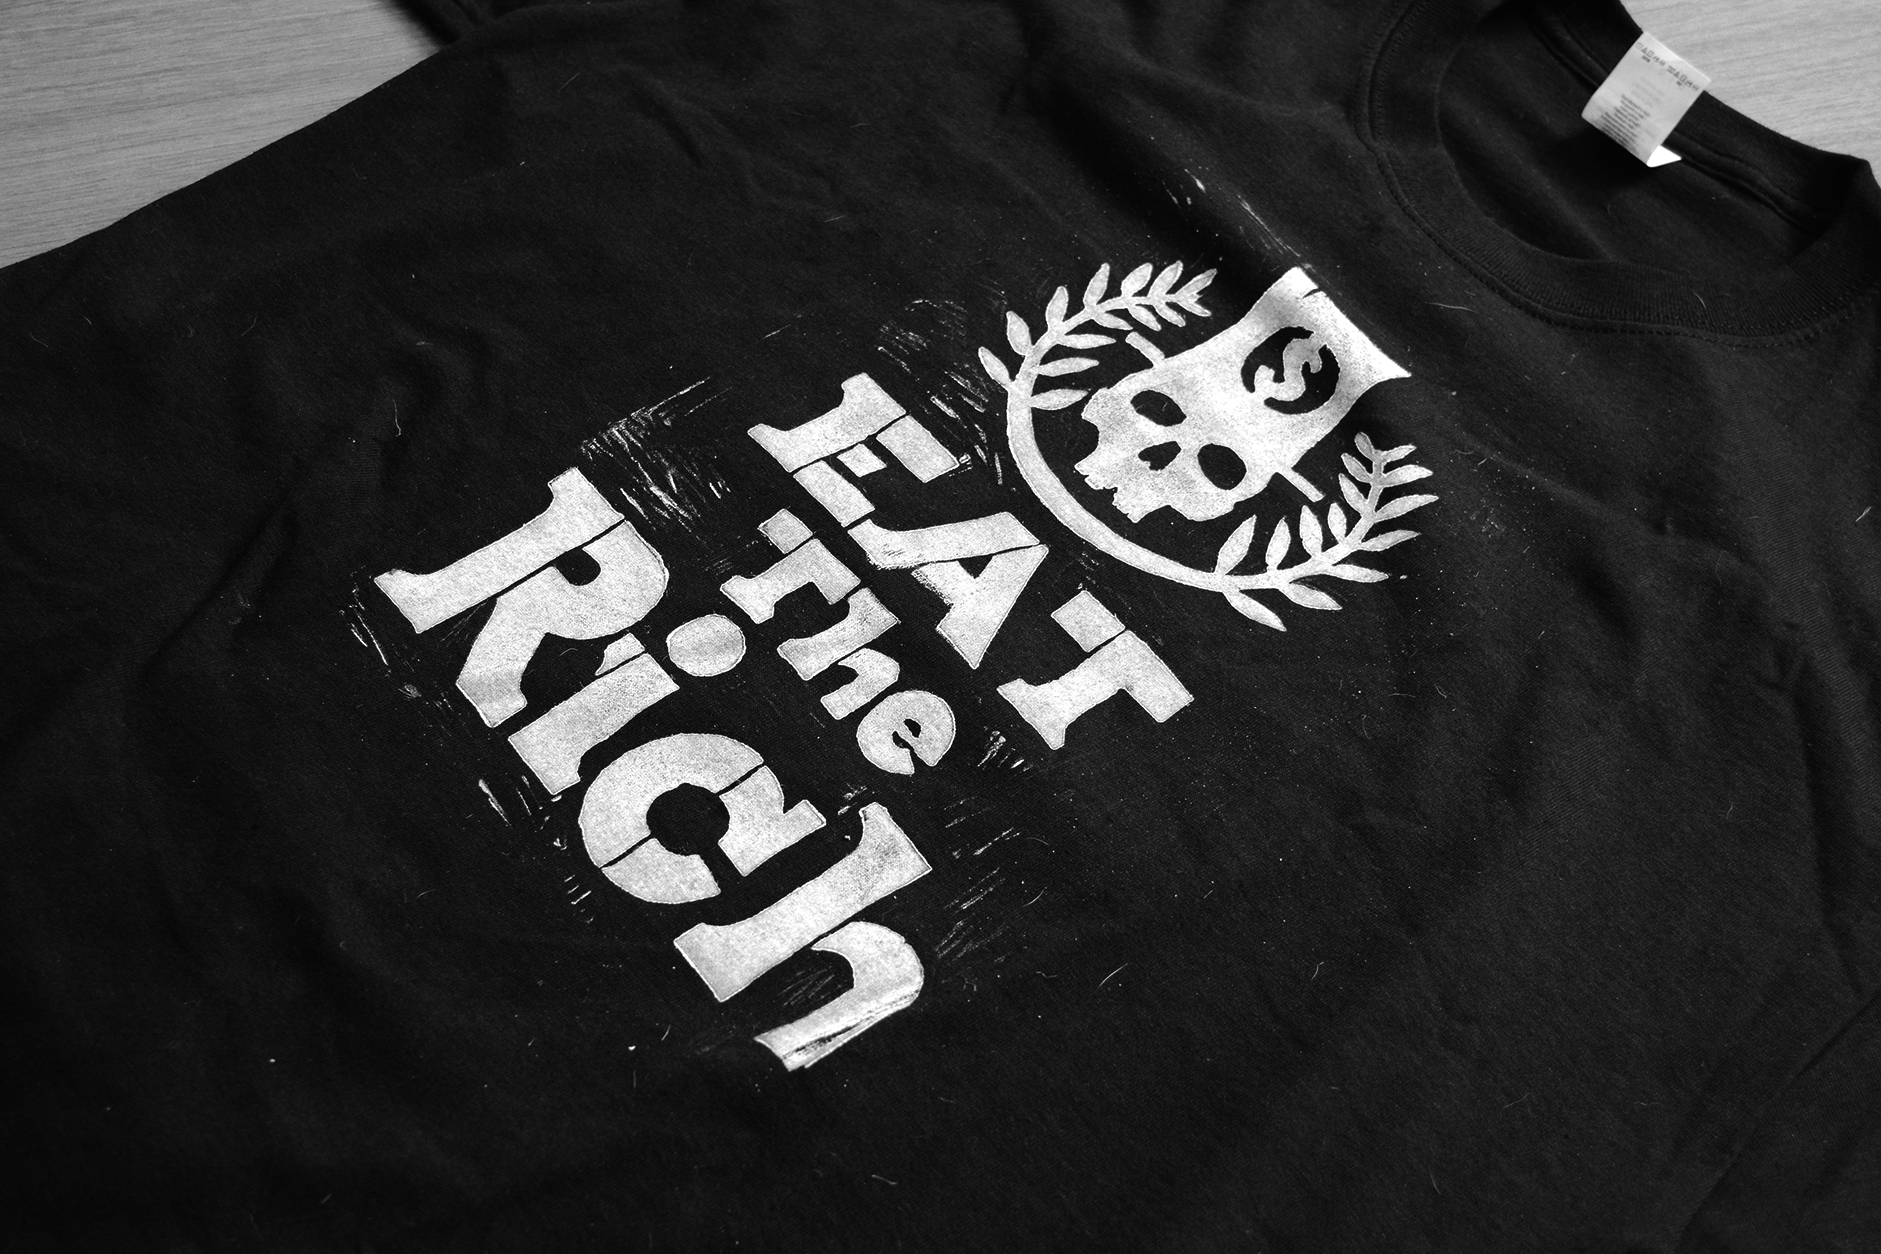 Camiseta Eat the Rich